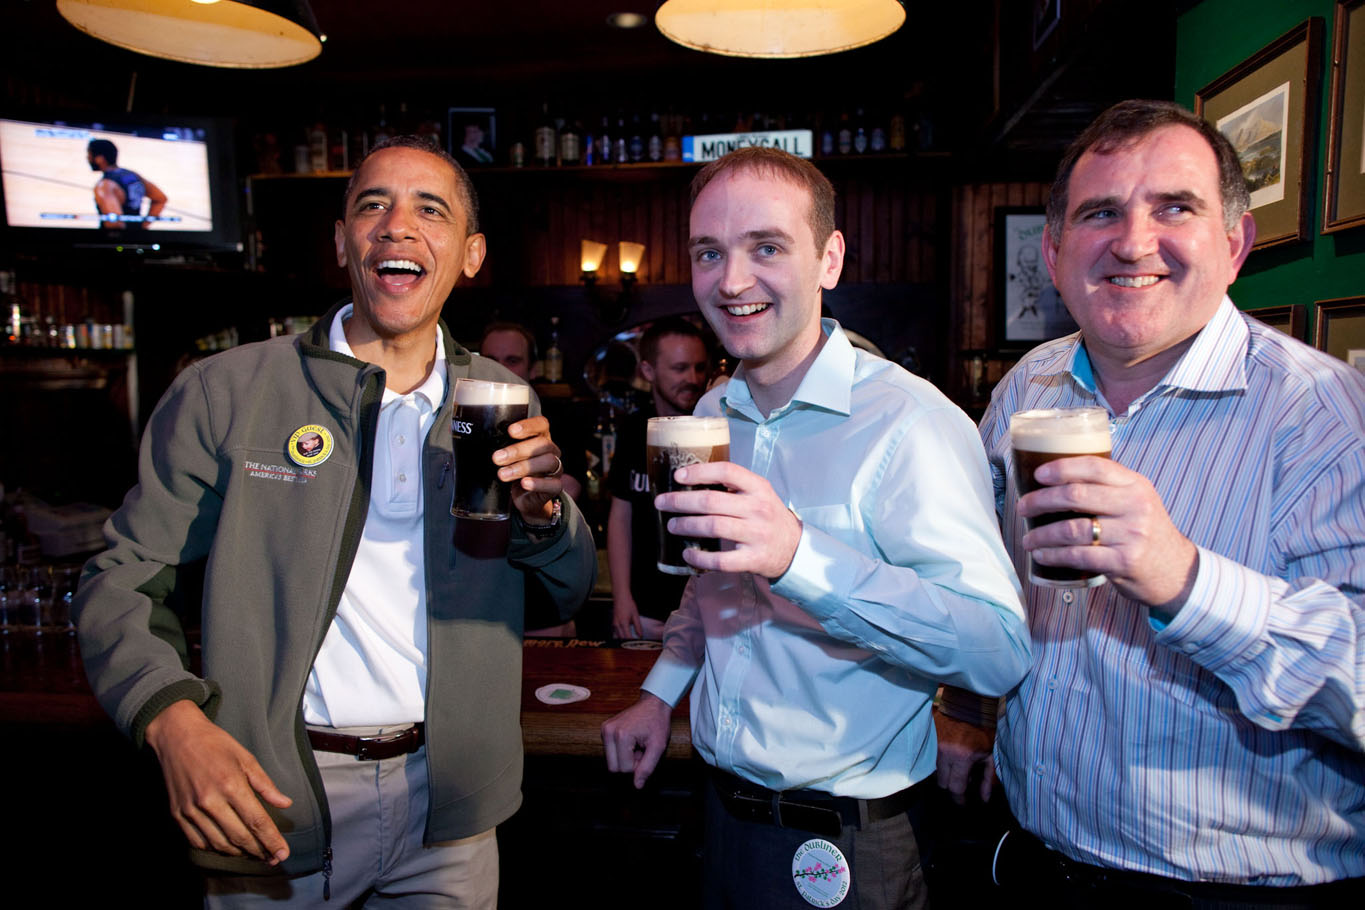 President Obama Visits the Dubliner with his Irish Cousin